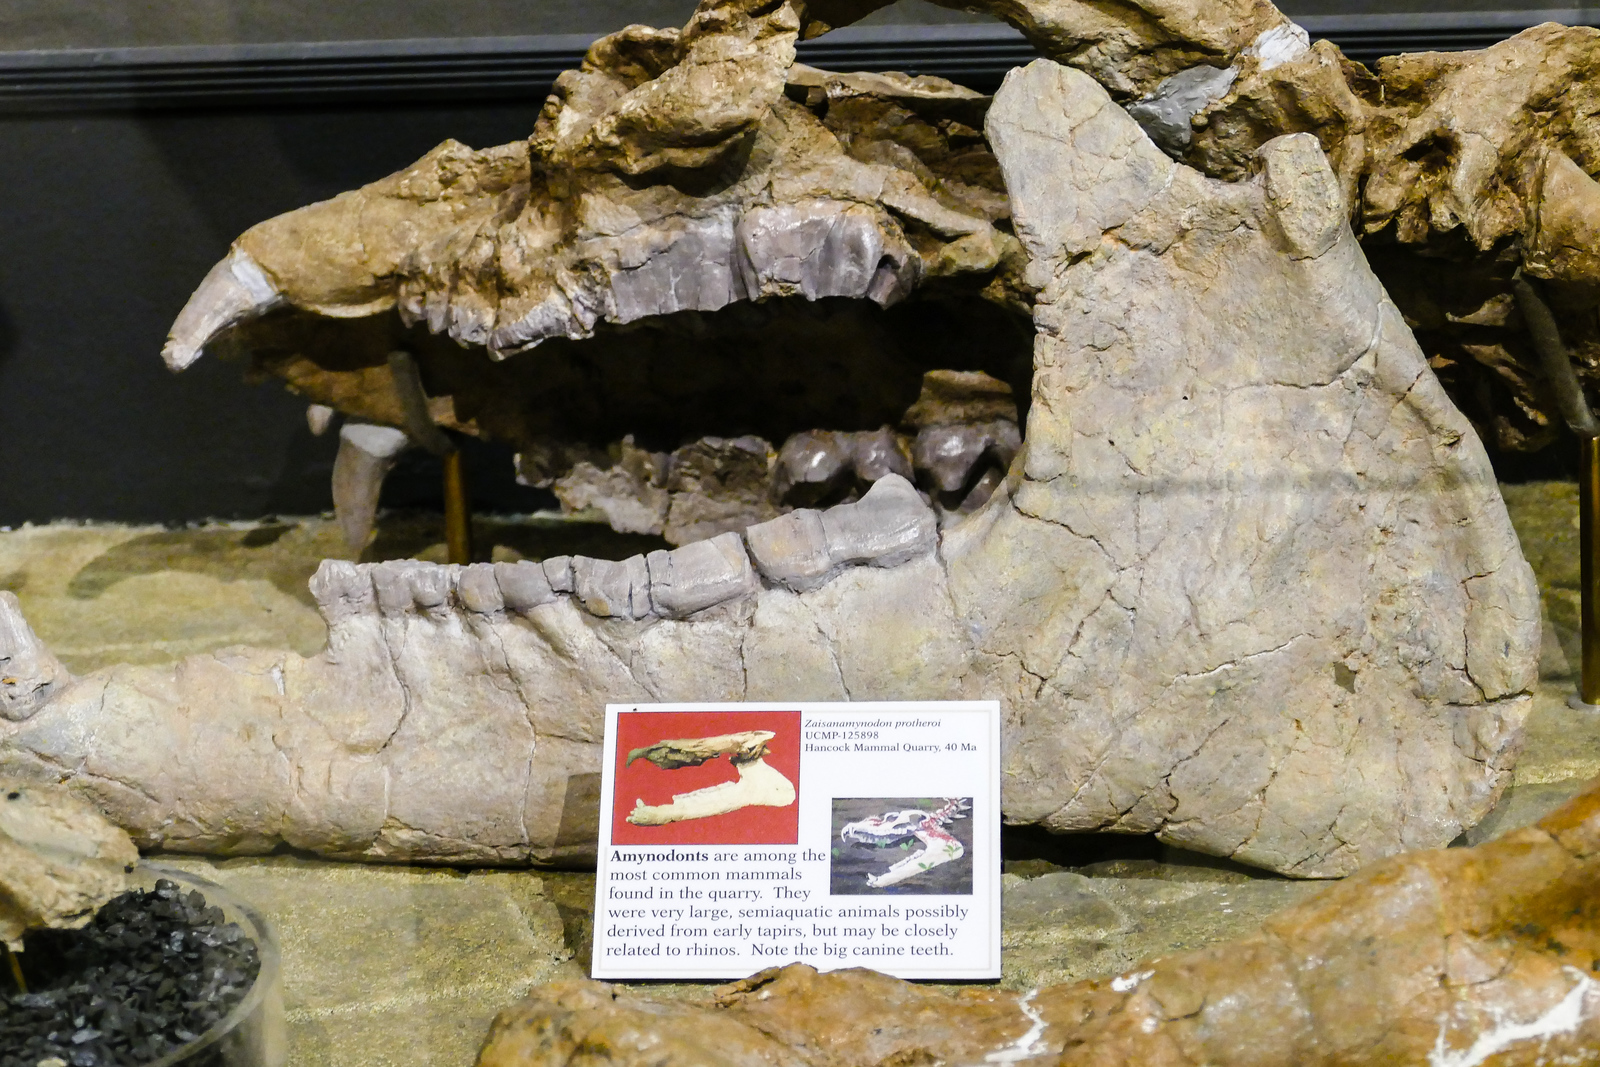 Boomer travel - Oregon - fossil displayed at Thomas Condon Paleontology Institute at John Day Fossil Beds National Monument.